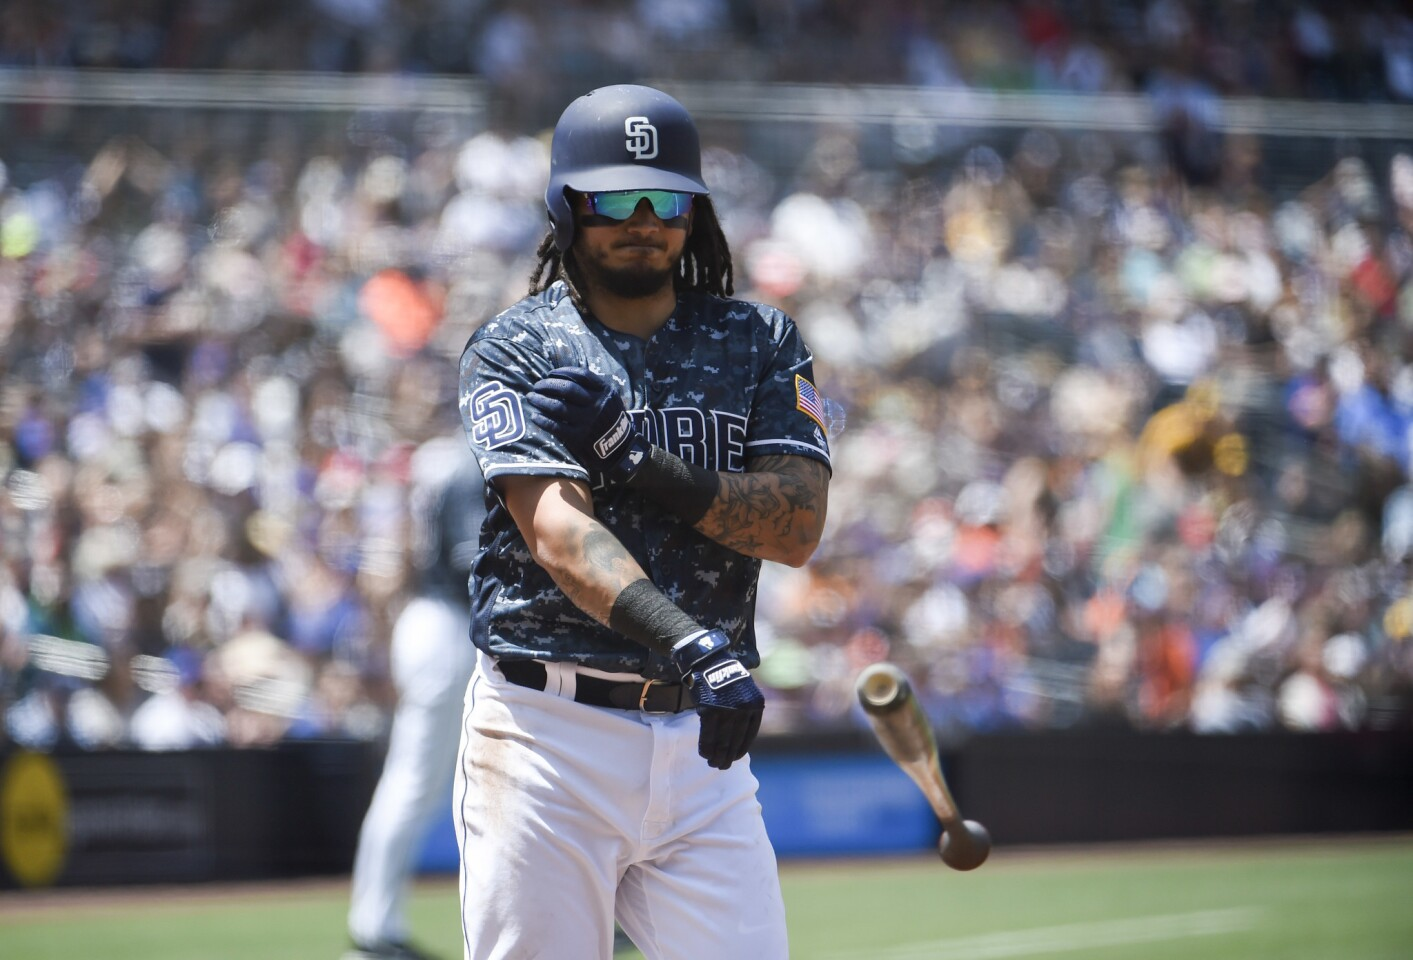 SAN DIEGO, CA - APRIL 29: Freddy Galvis #13 of the San Diego Padres throws his bat after striking out with the bases loaded during the first inning of a baseball game against the New York Mets at PETCO Park on April 29, 2018 in San Diego, California. (Photo by Denis Poroy/Getty Images) ** OUTS - ELSENT, FPG, CM - OUTS * NM, PH, VA if sourced by CT, LA or MoD **